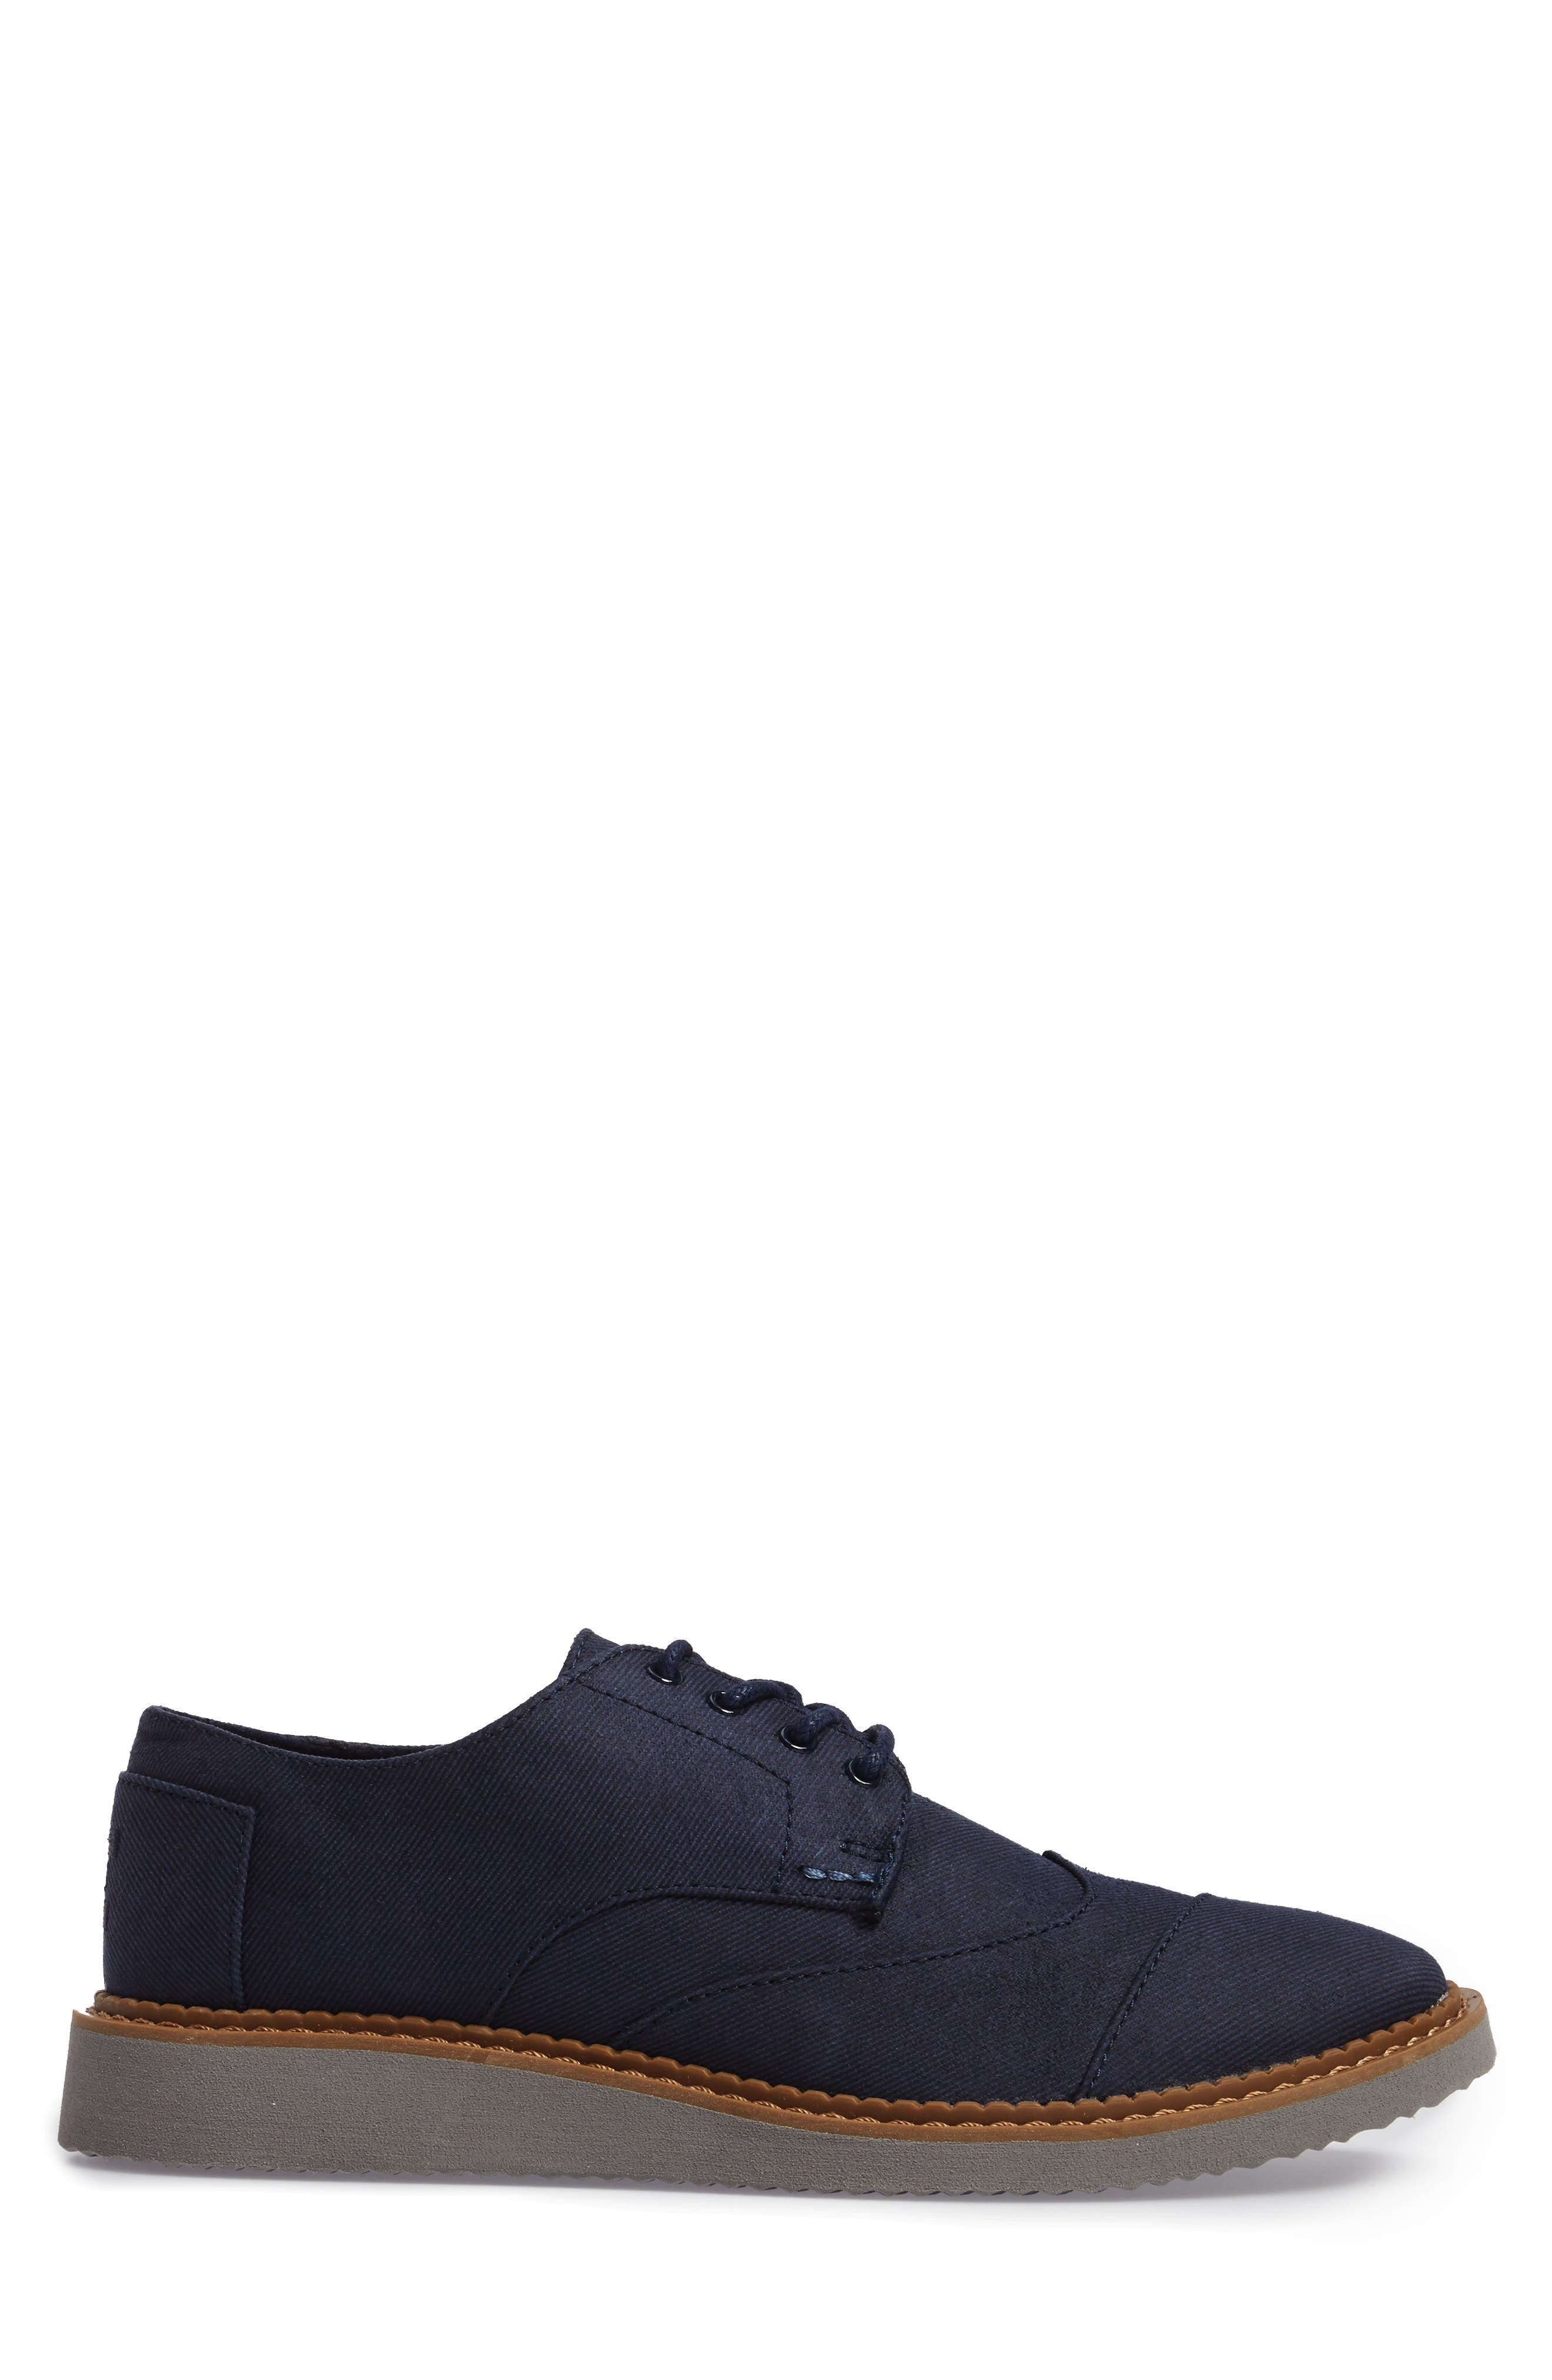 'Classic Brogue' Cotton Twill Derby,                             Alternate thumbnail 44, color,